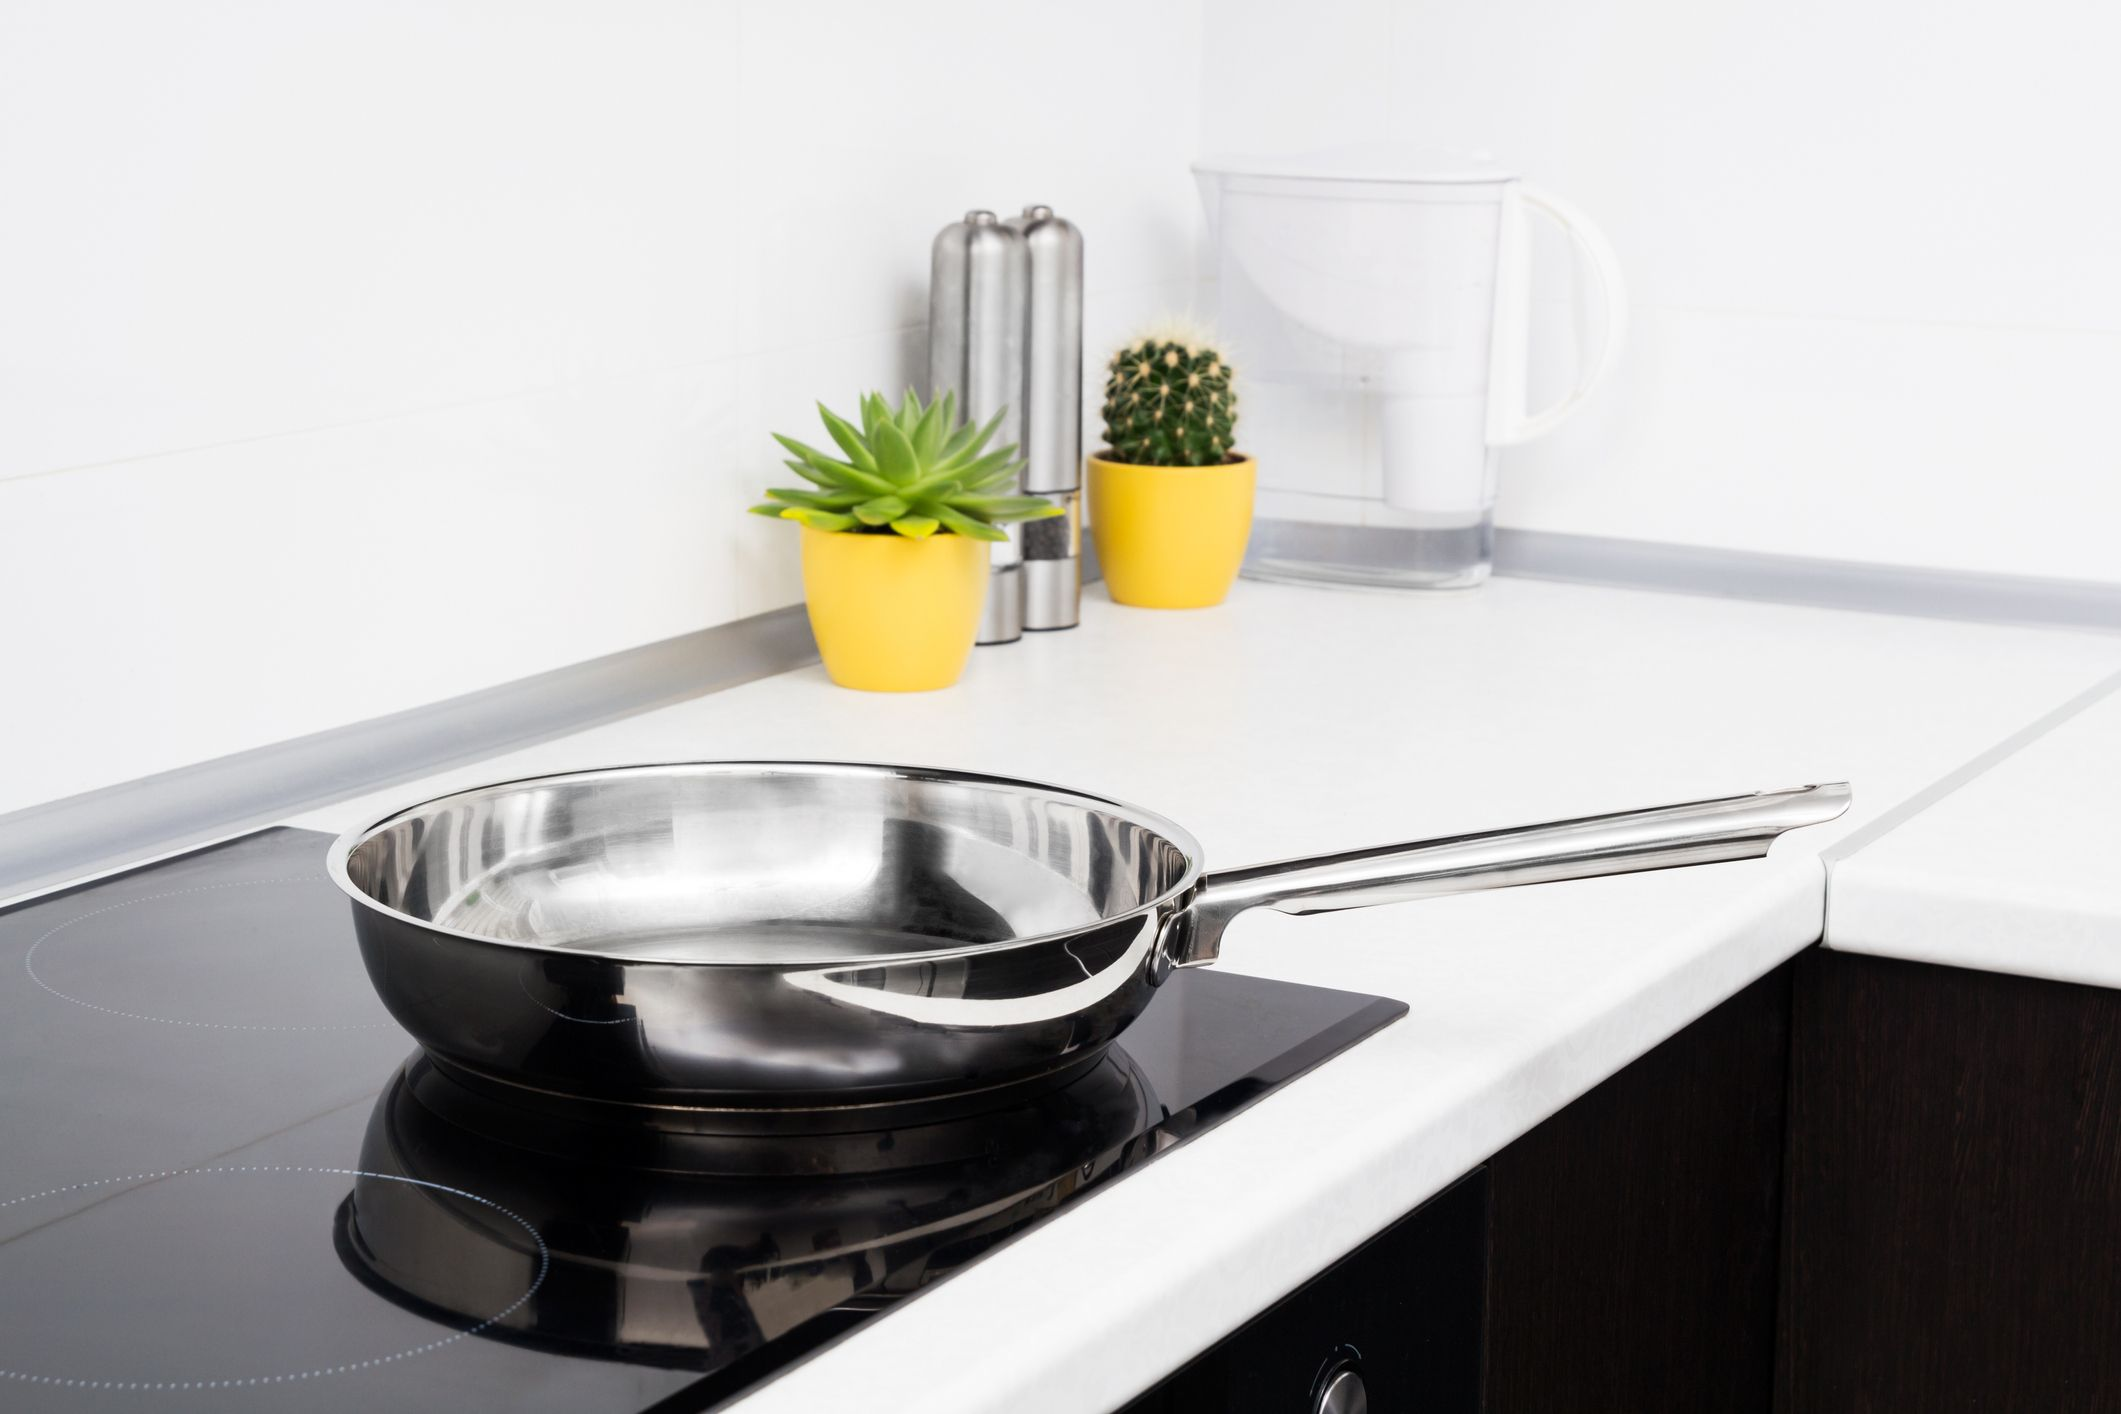 Whirlpool, KitchenAid, and JennAir Glass Cooktops Are Being Recalled After Turning on By Themselves